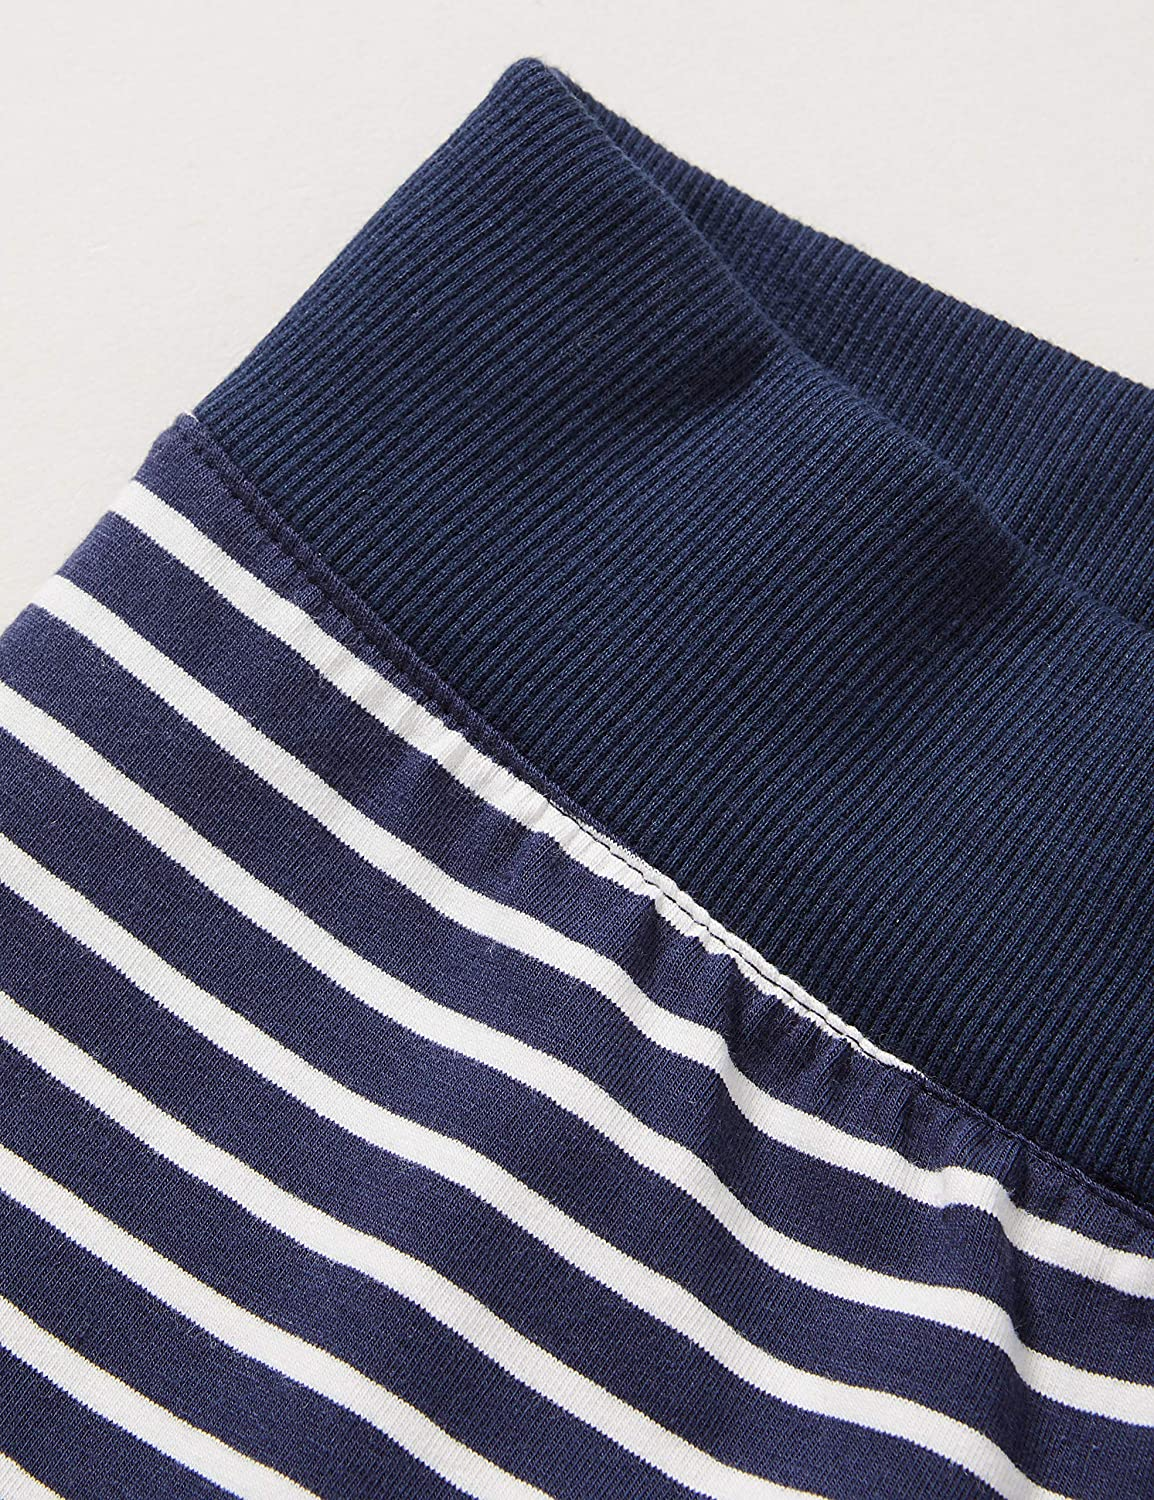 Sanetta Girls Midnight Sporty Leggings timelessly Beautiful Dark Blue Striped Look Athleisure Collection